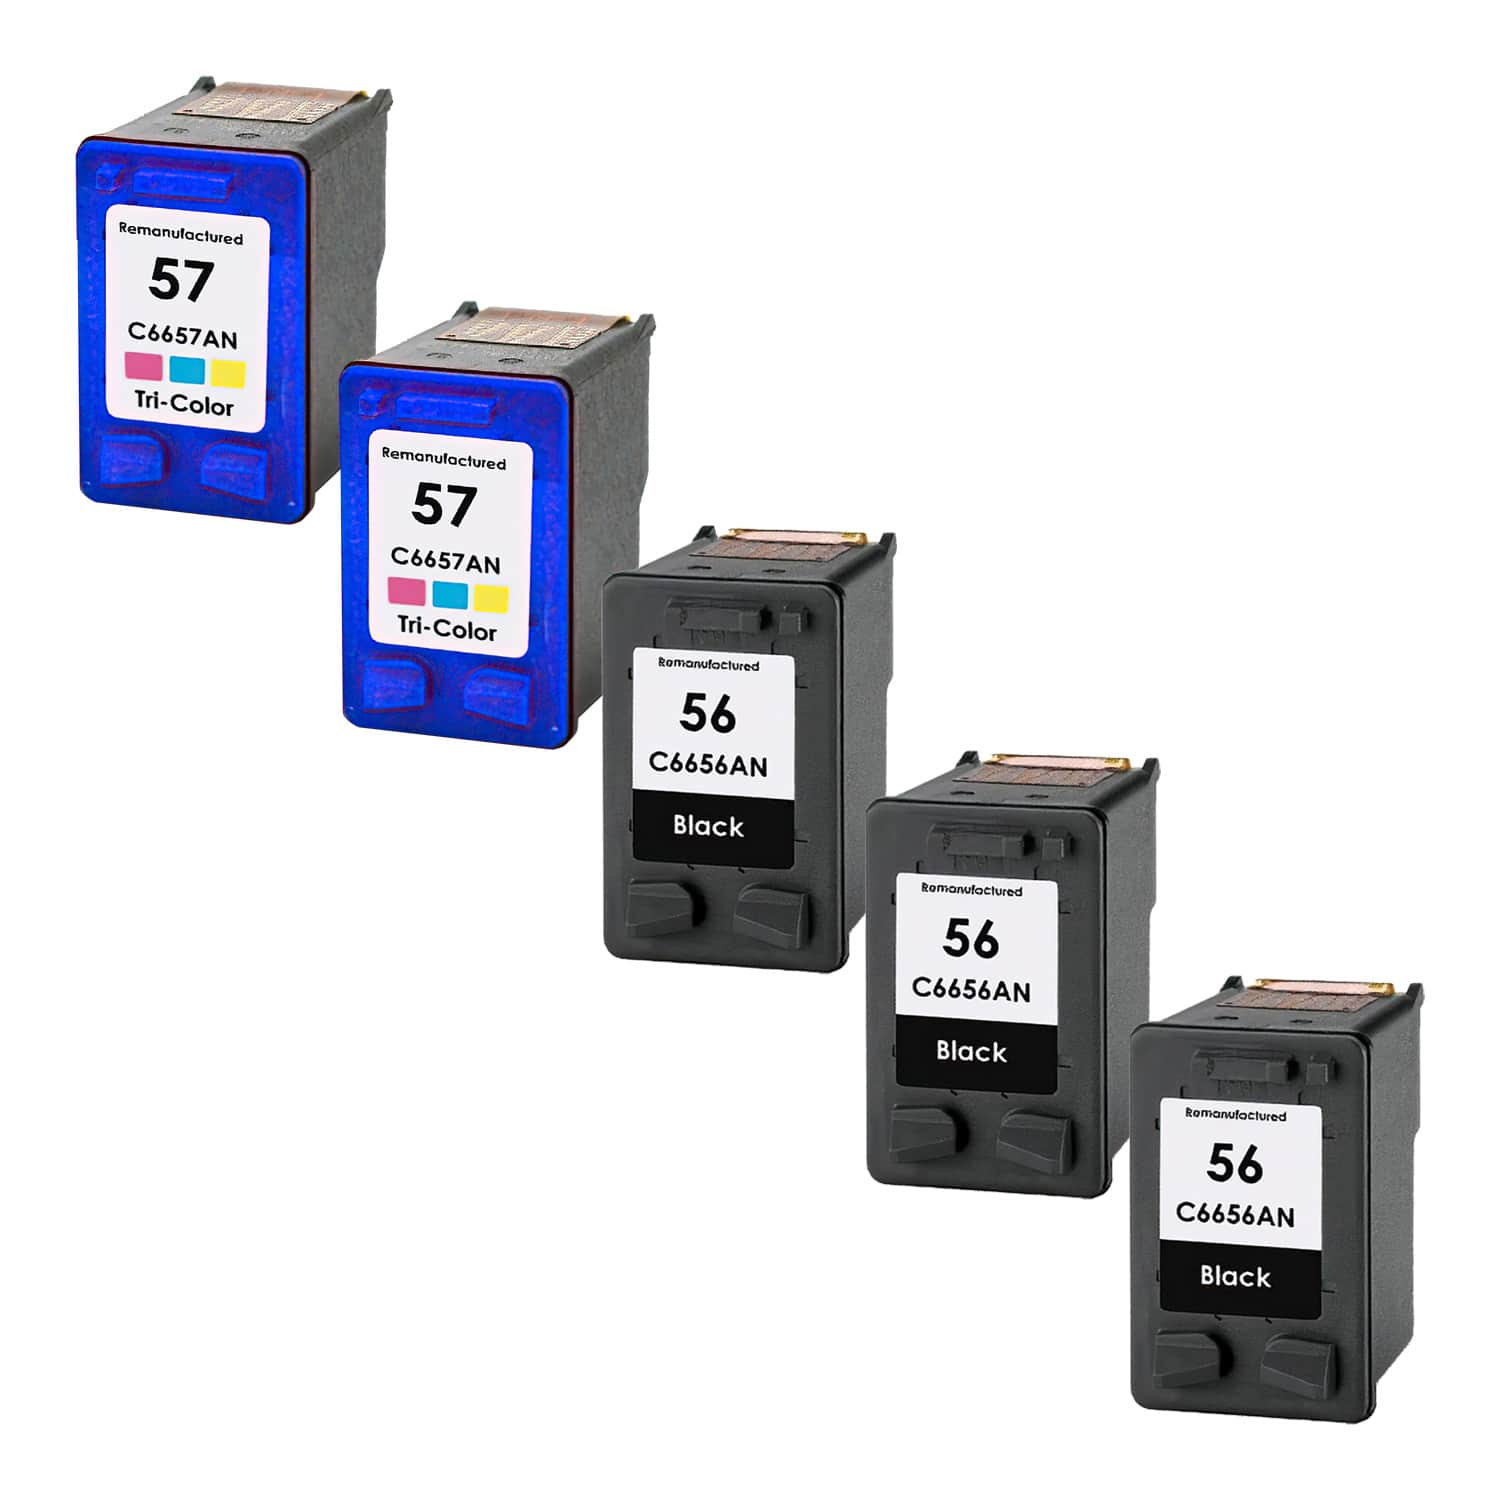 Remanufactured HP 57-56 Inkjet Pack - 5 Cartridges